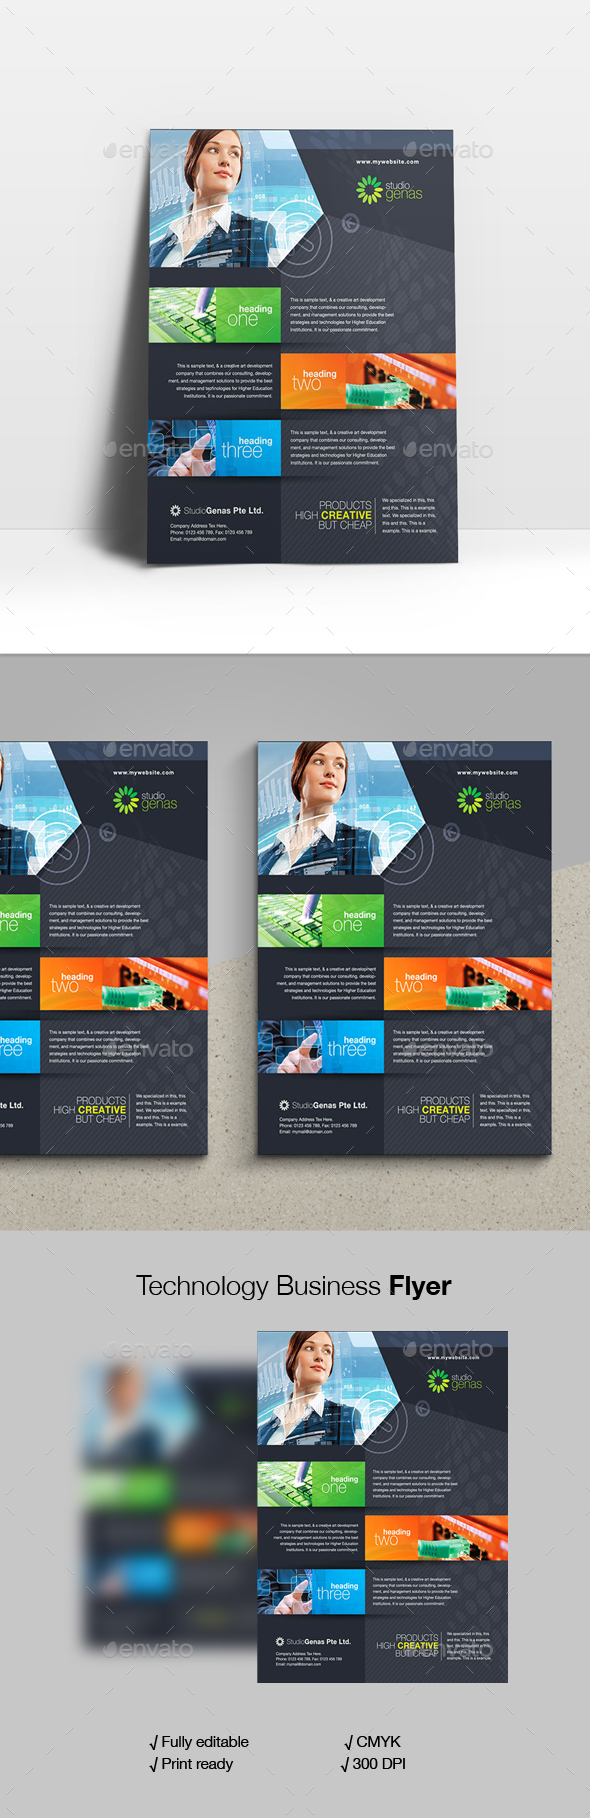 Technology Business Flyer - Corporate Flyers